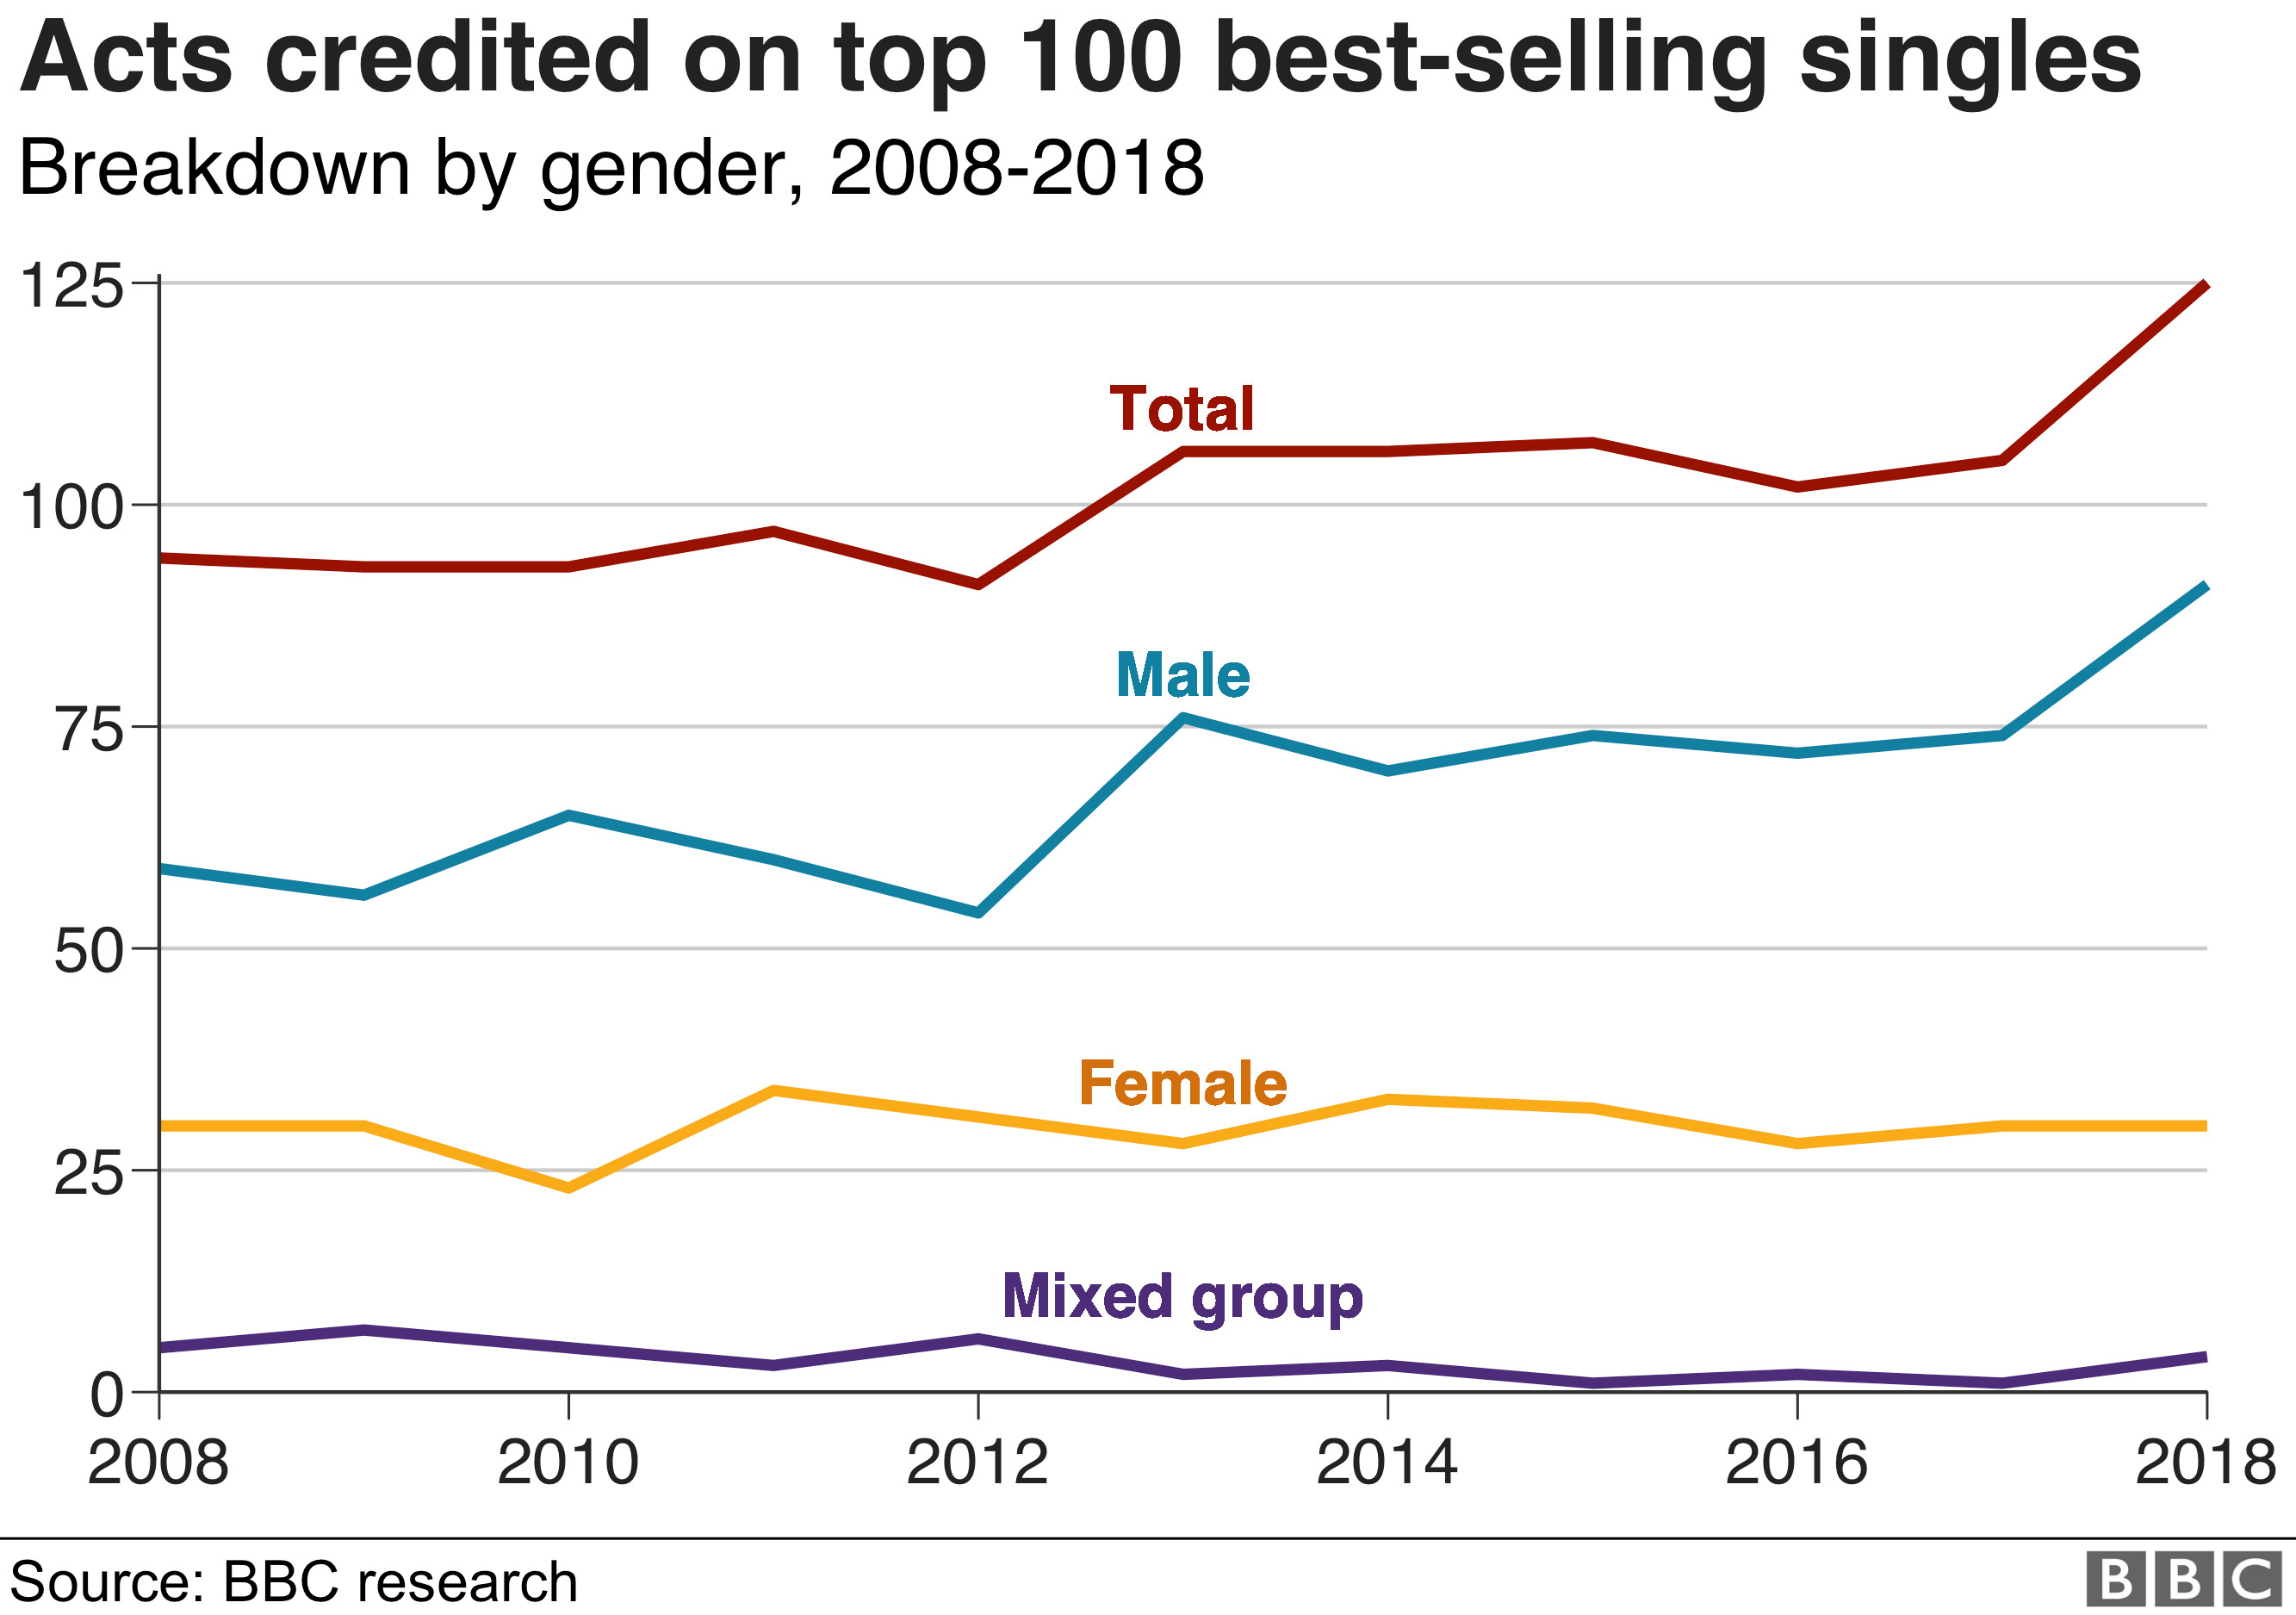 Chart showing numbers of acts credited on the top 100 best-selling singles, 2008-2018